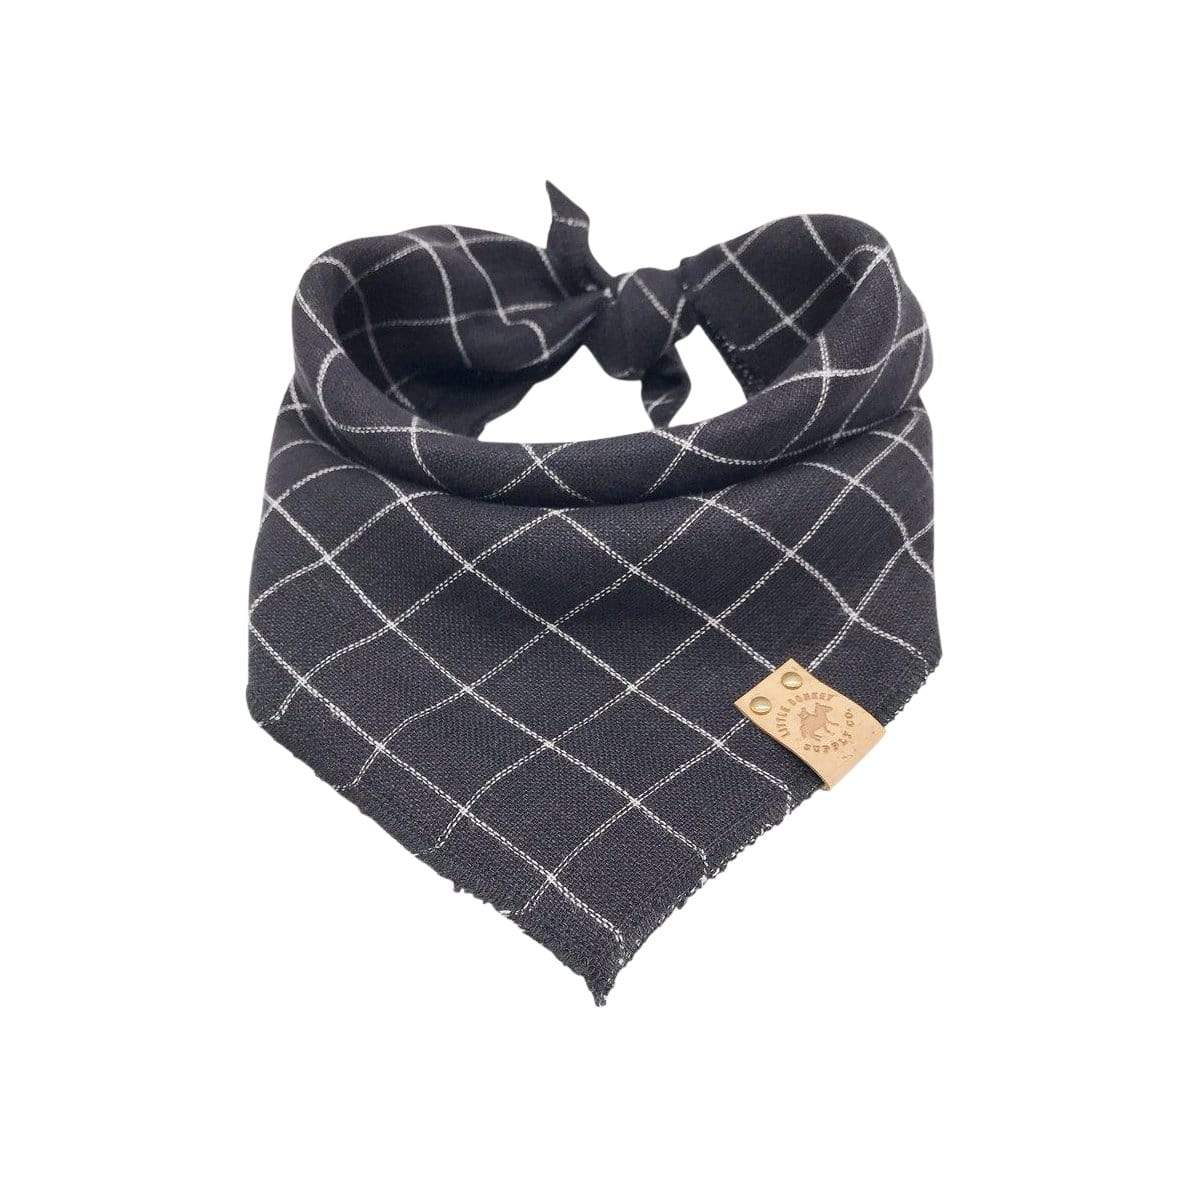 Little Donkey Supply Co. Bandanas + Bow Ties Black Dog Bandana